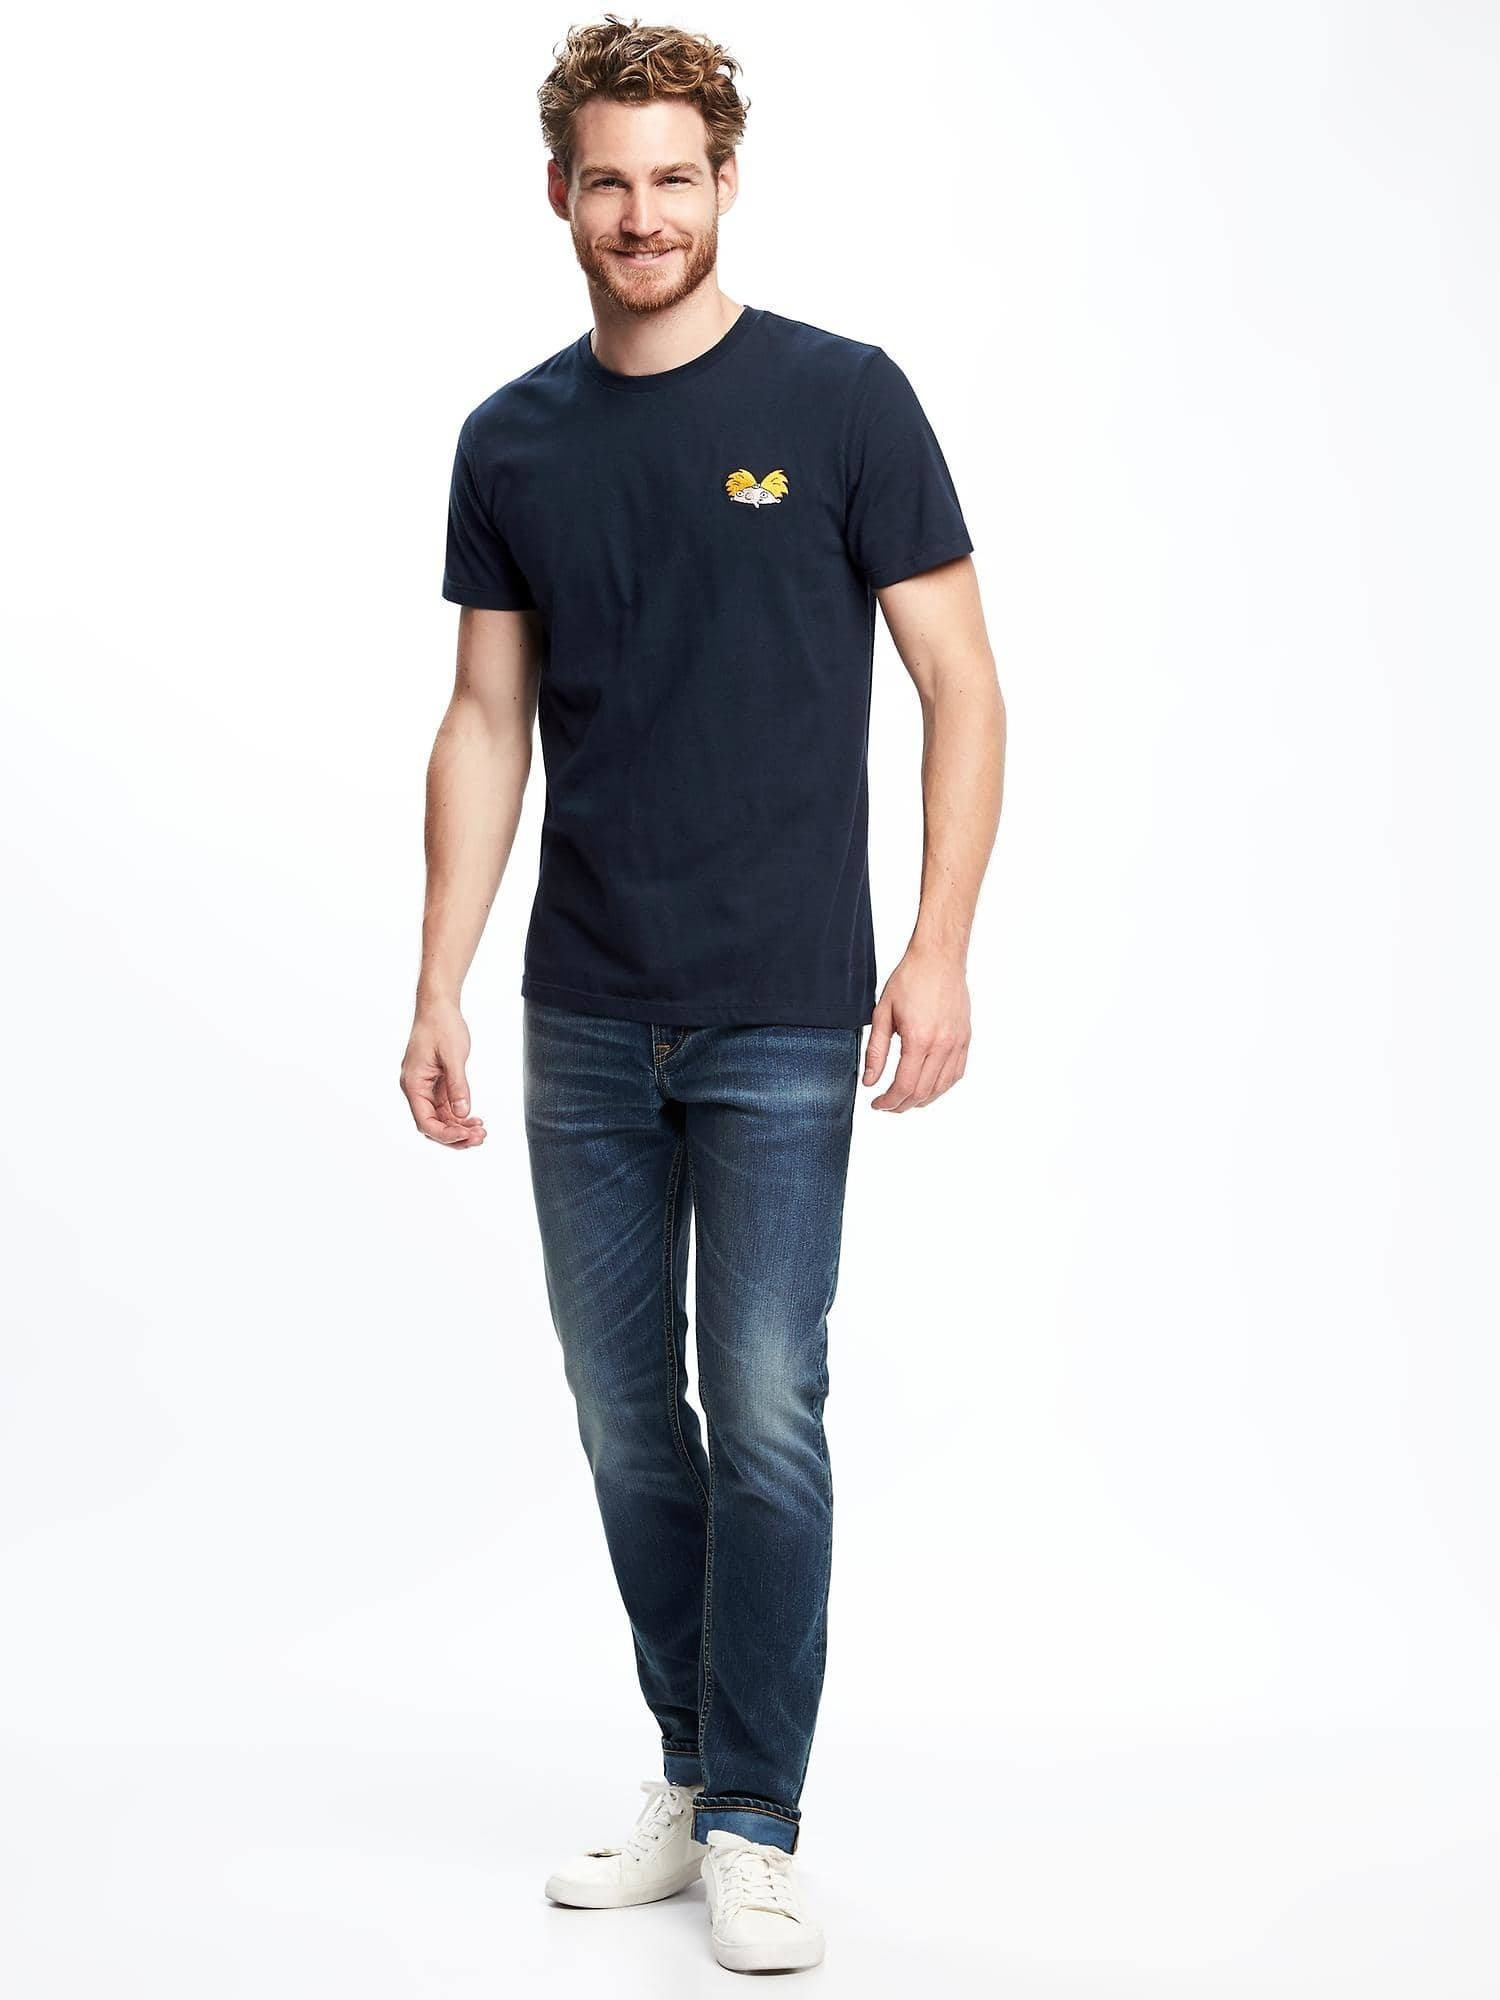 ea6d6319 How to Wear a Navy Print Crew-neck T-shirt For Men (23 looks ...